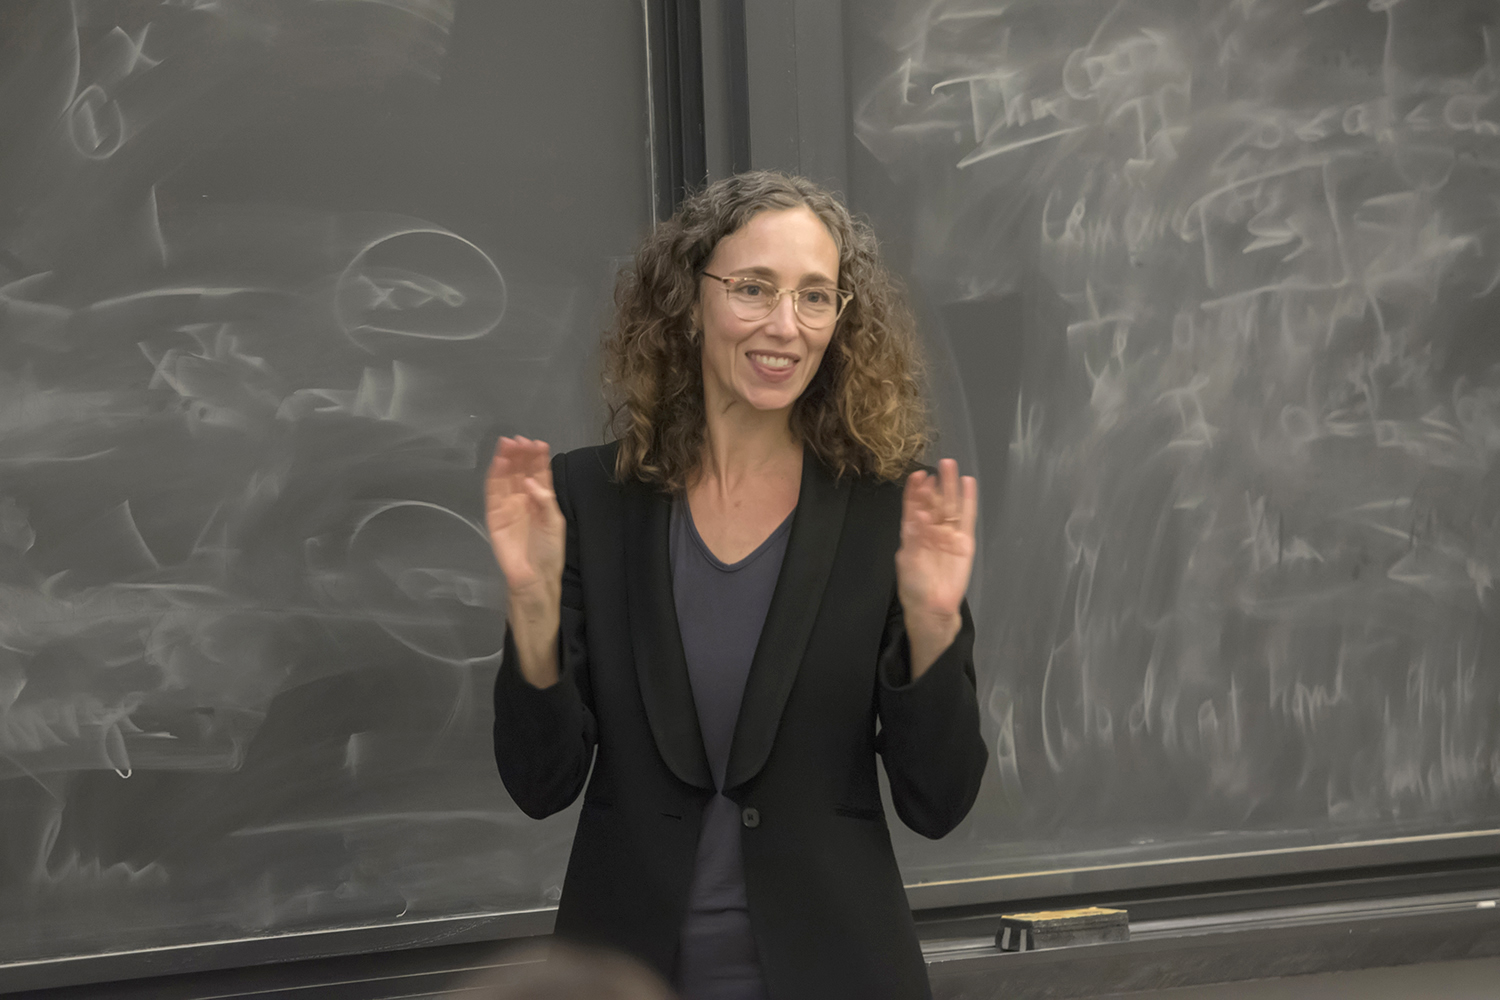 Cognitive Science / Philosophy (CGS 316 / PHI 348 ) class taught by Hanna Pickard